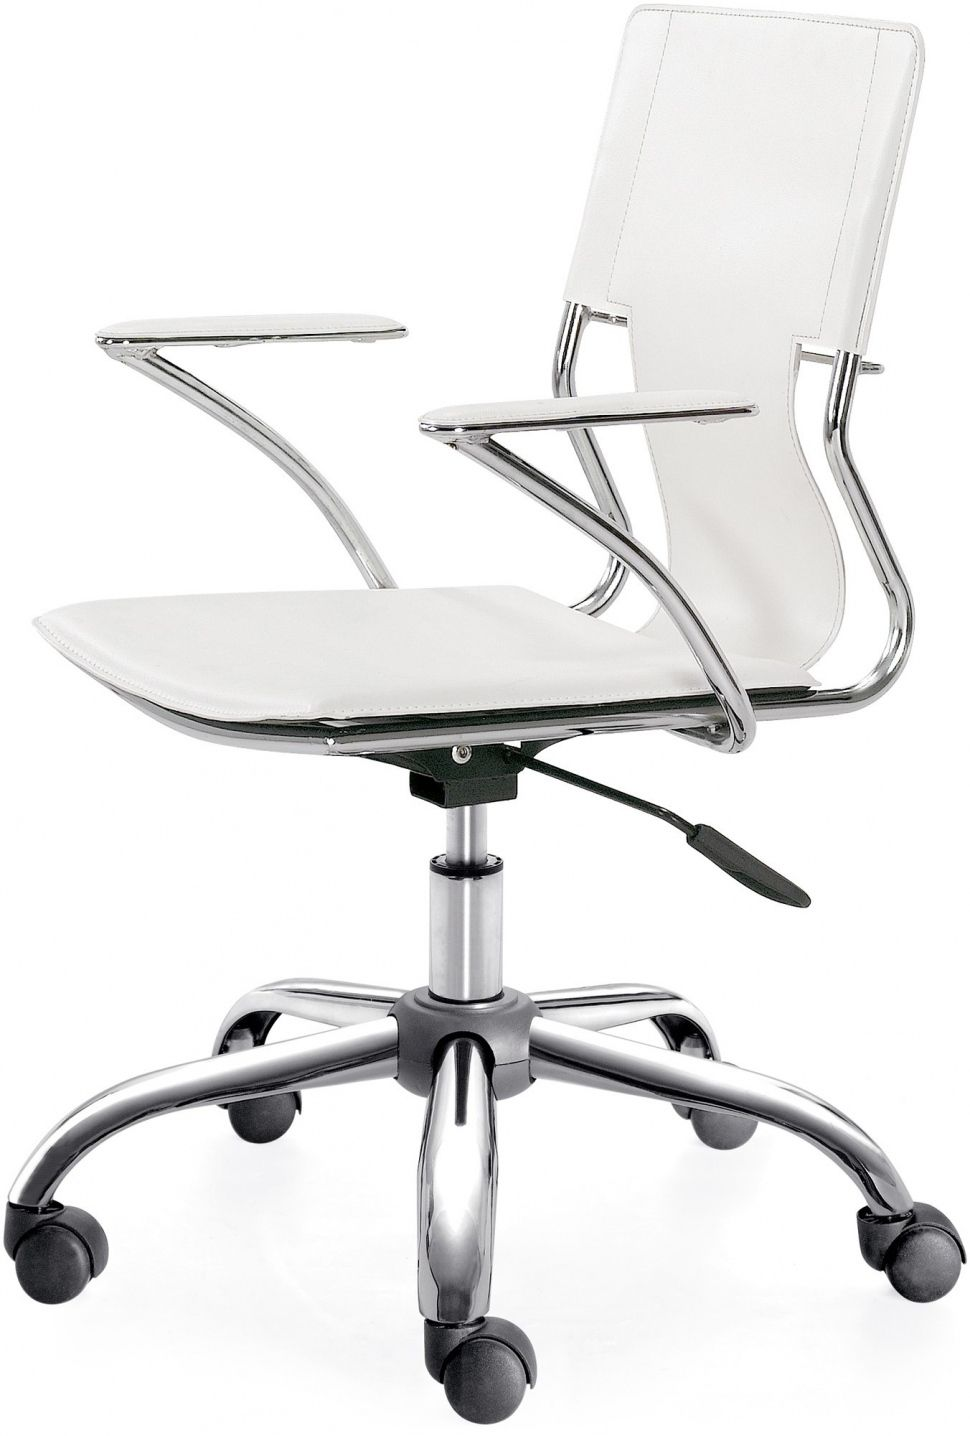 77+ Antique White Office Chair - Used Home Office Furniture Check ...